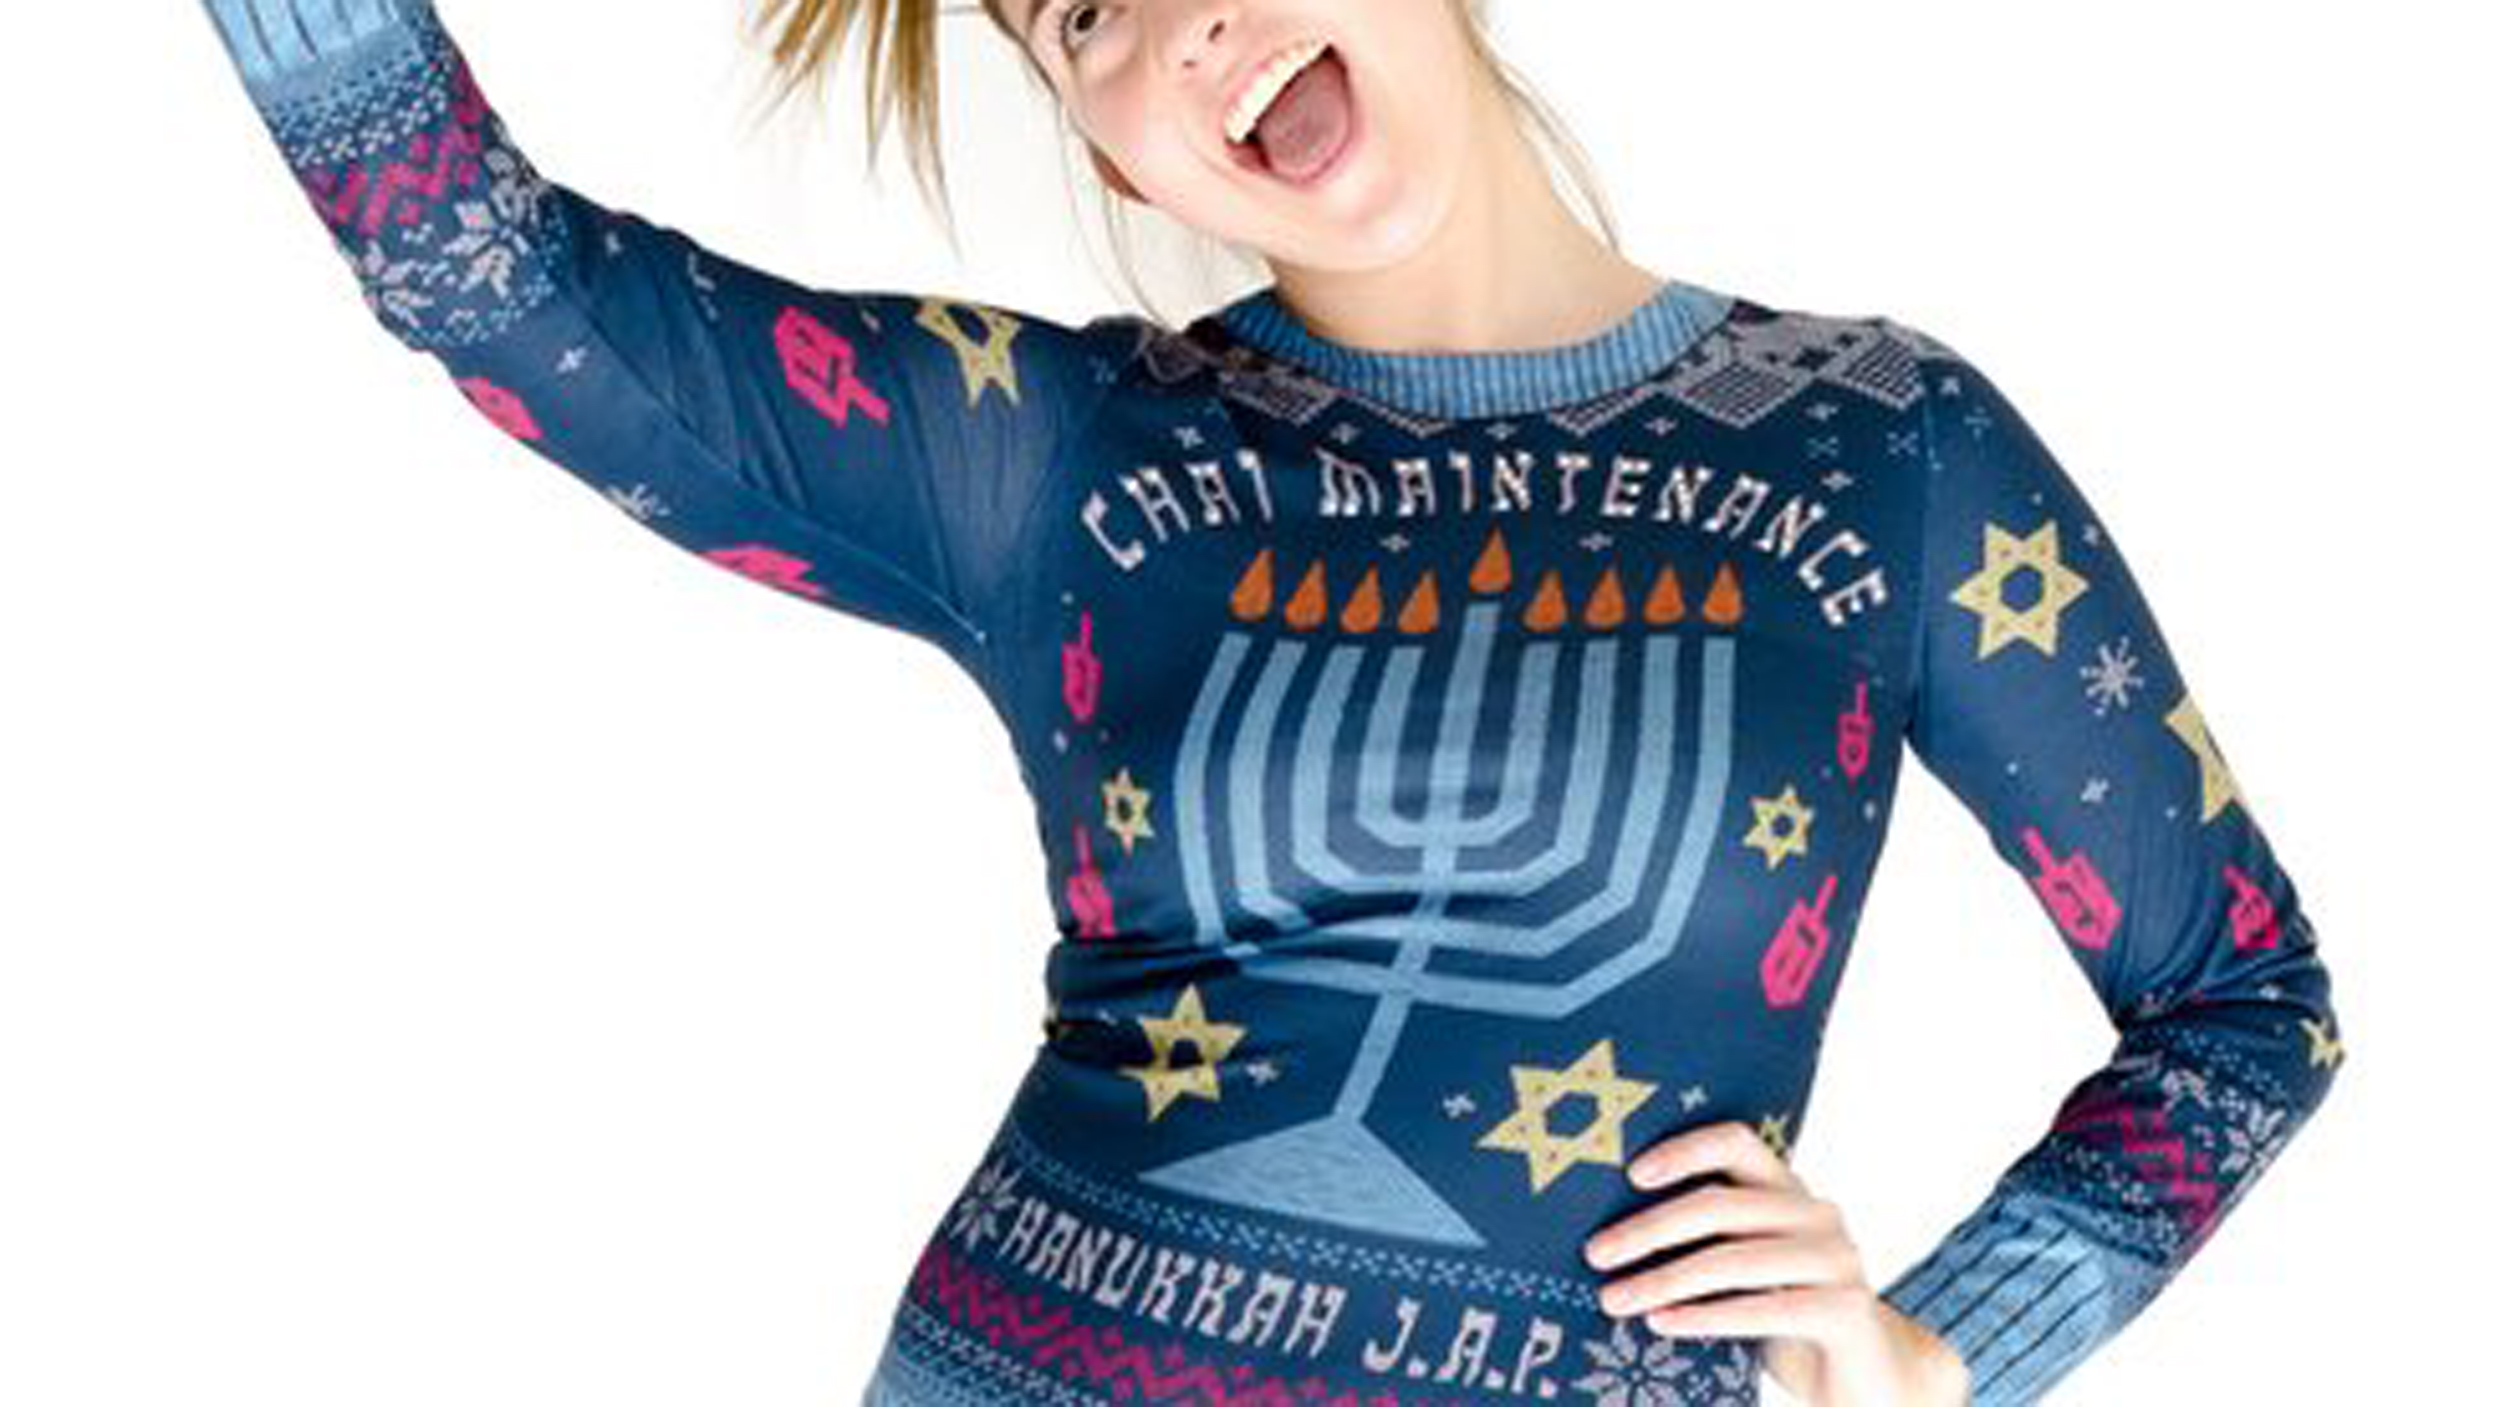 nordstroms hanukkah sweater causes internet outrage - Nordstrom Christmas Sweaters